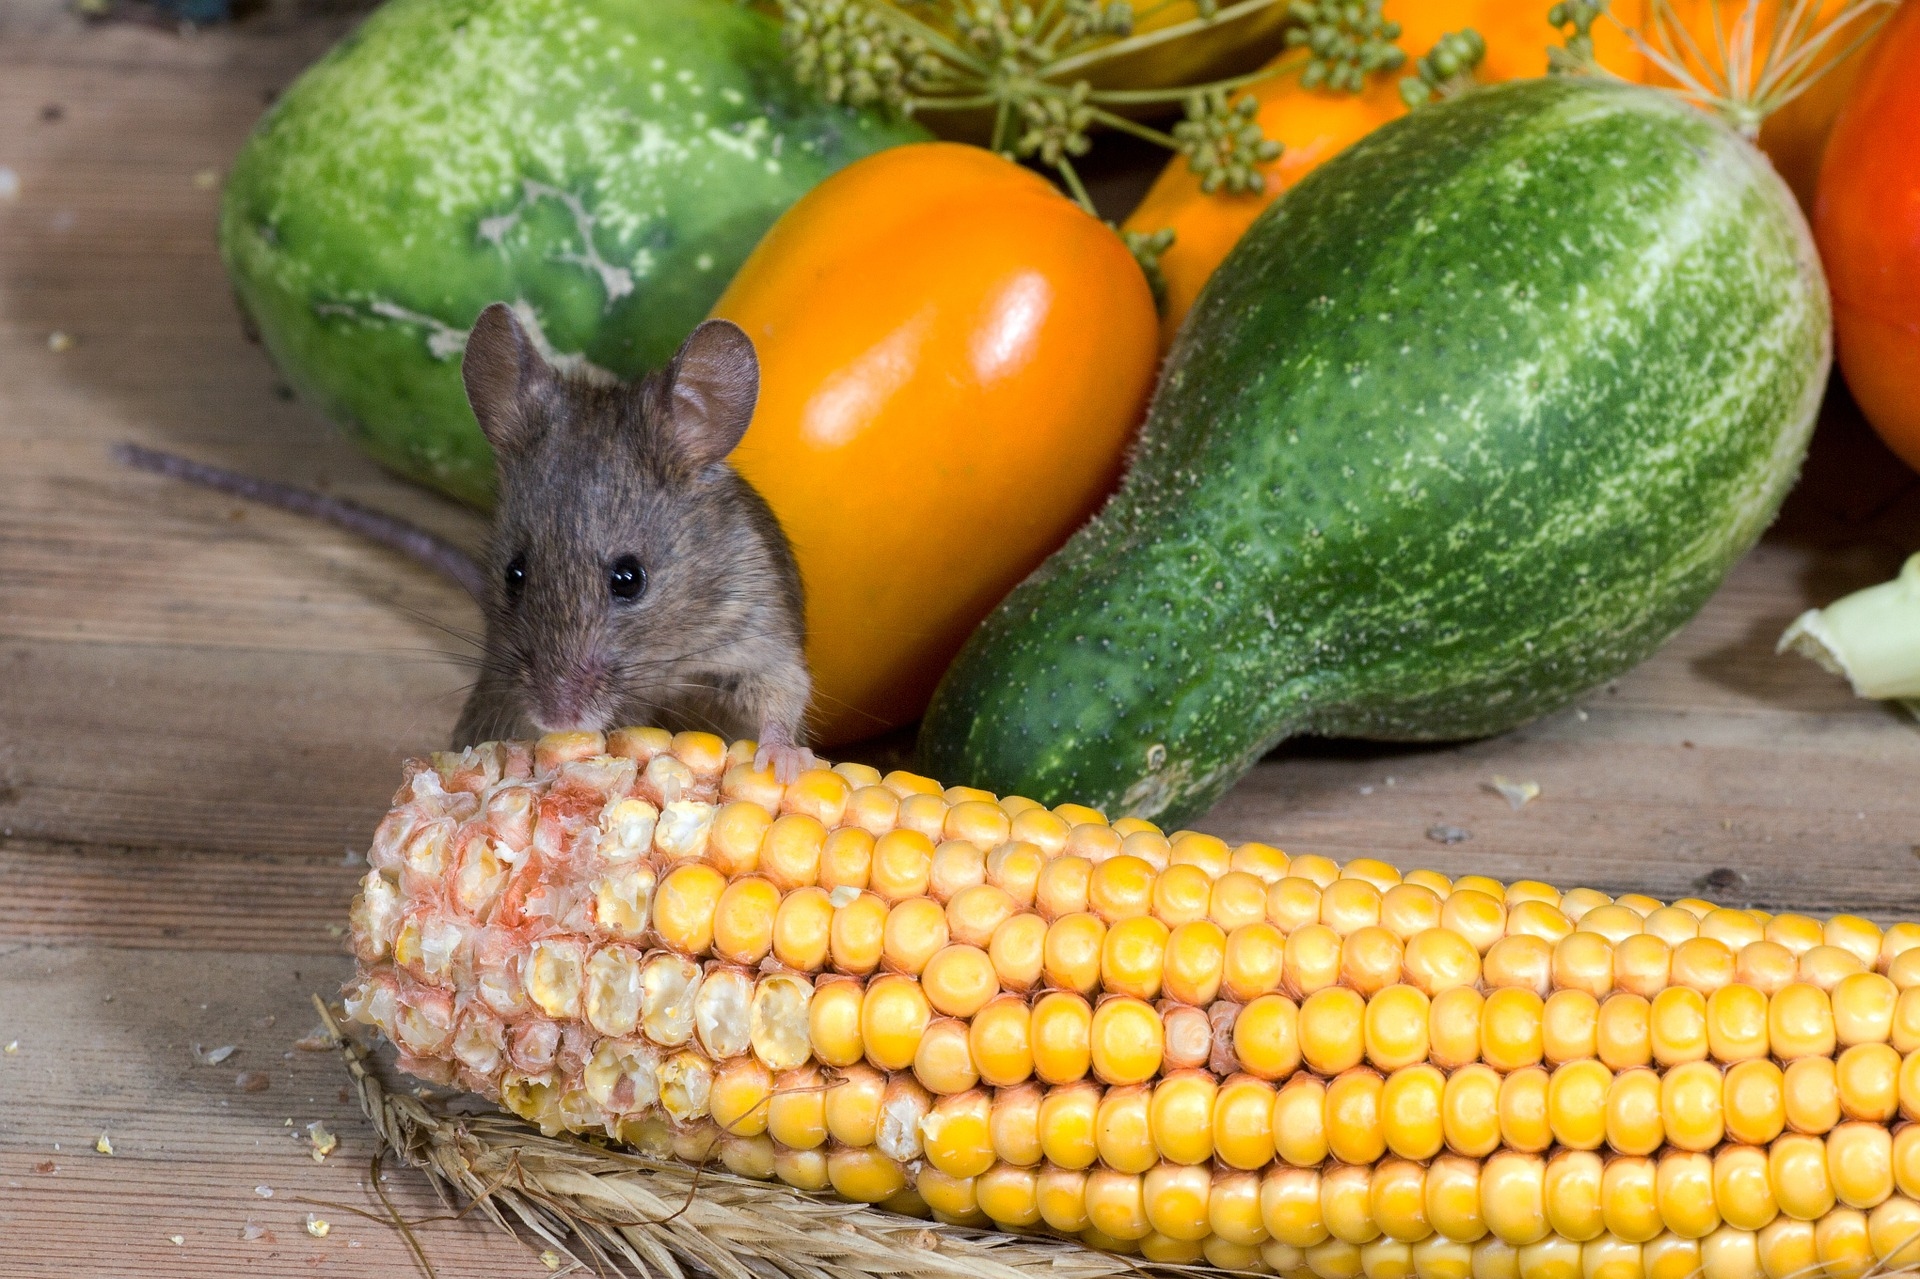 mice are food pests